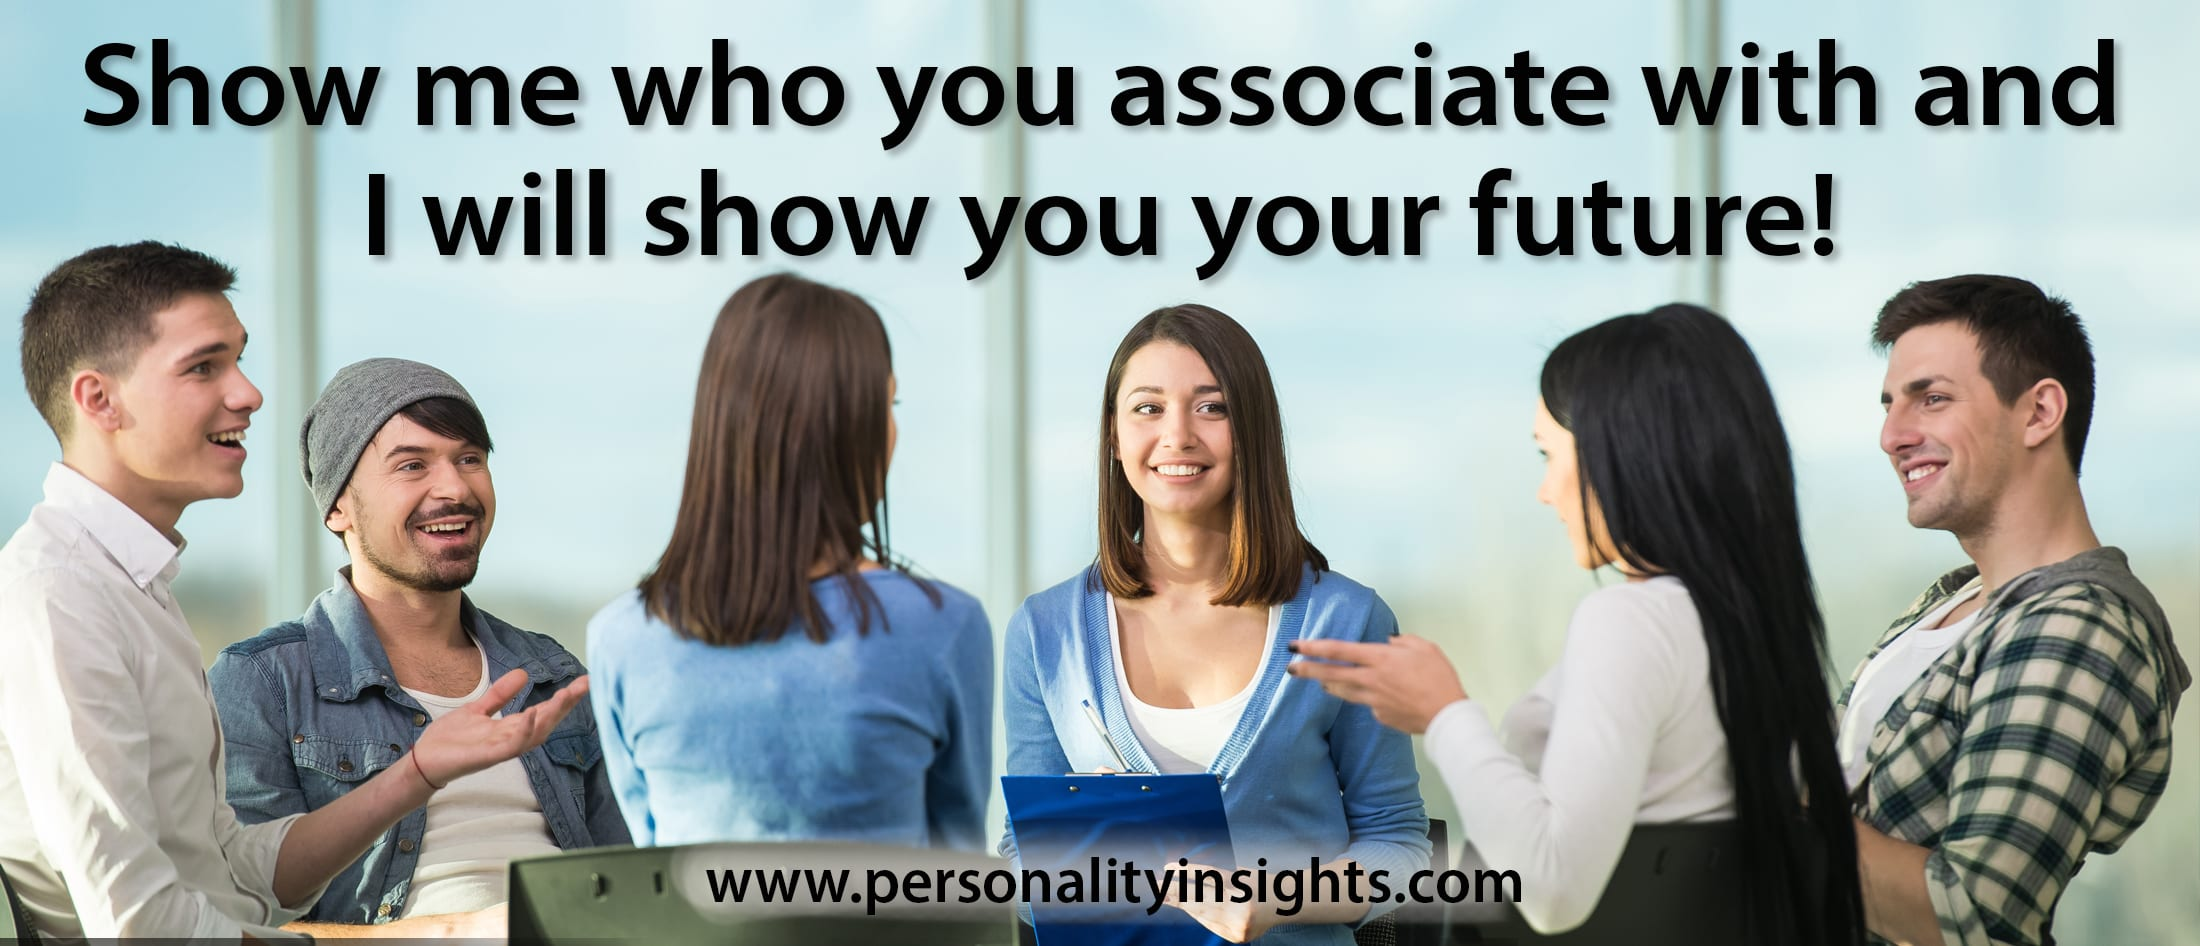 Tip: Show me who you associate with and I will show you your future!